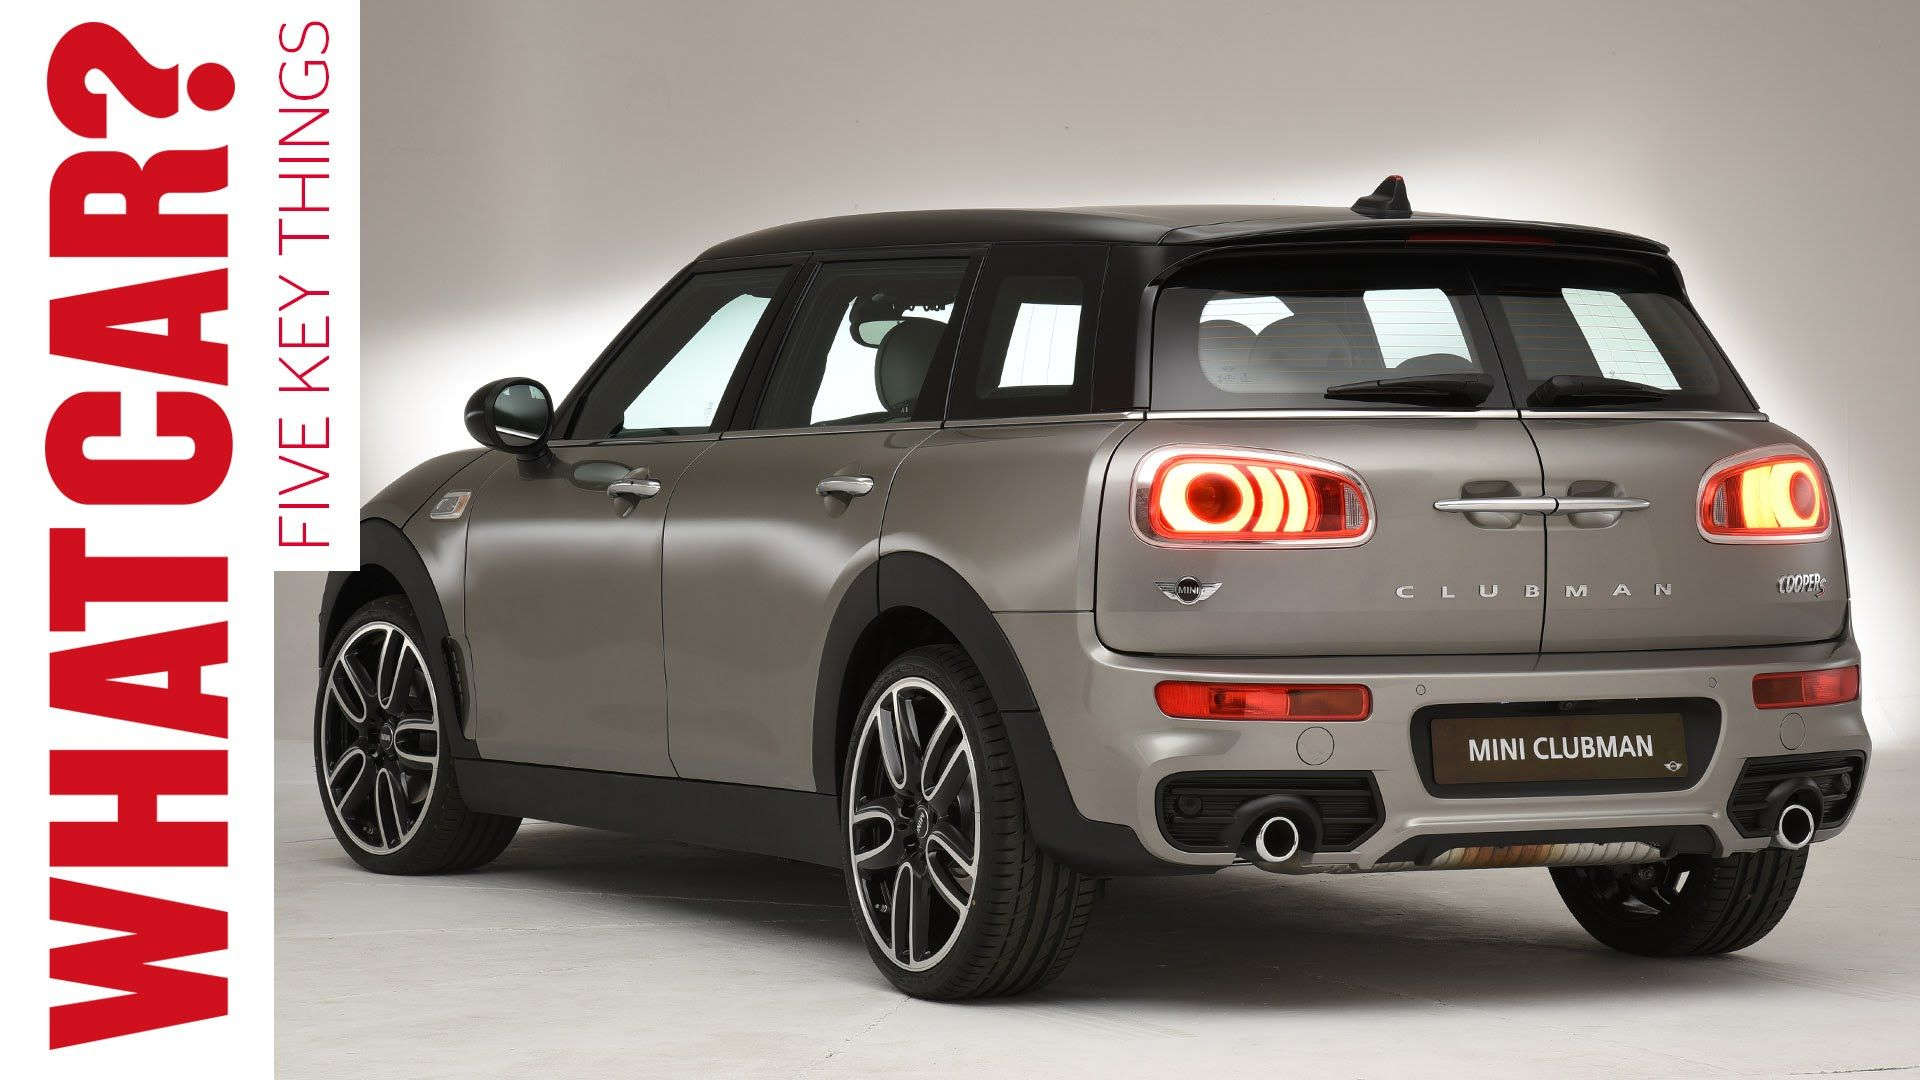 We take you on an exclusive look around the brand new Mini Clubman before its official launch in October this year. Find out all there is to know about this ...